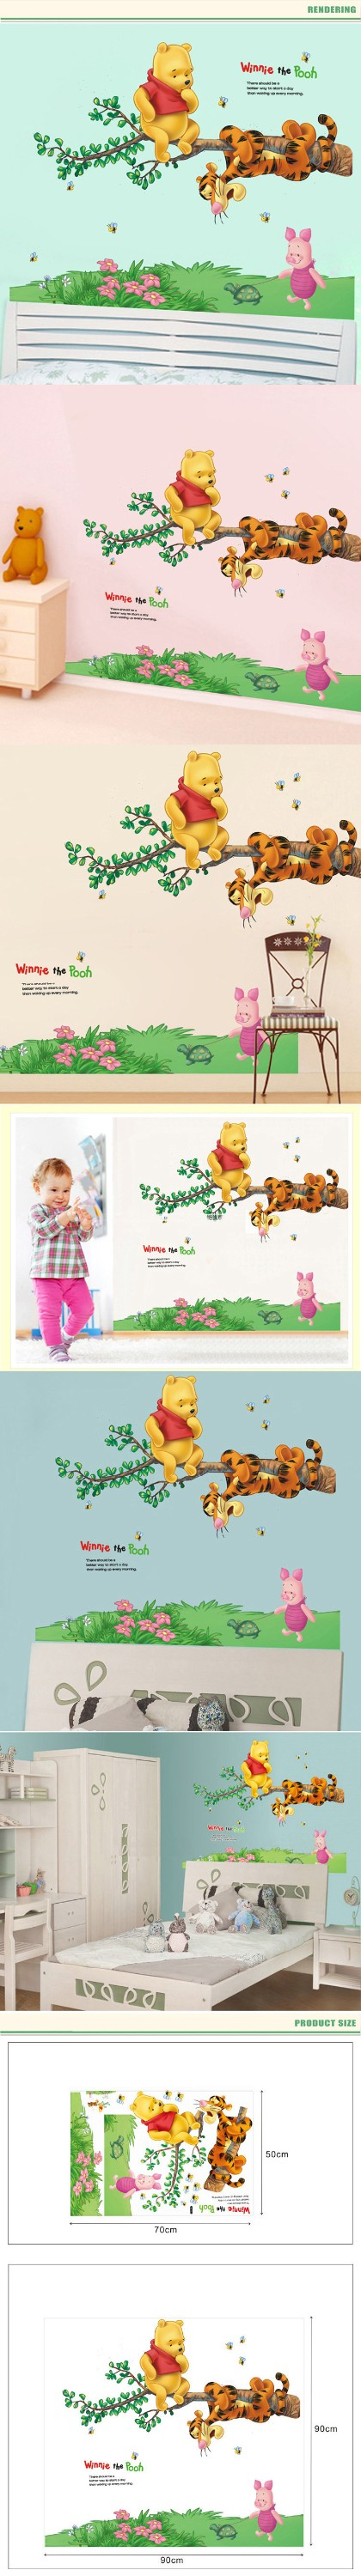 2016 PVC Wall Decor Decorative Removable Winnie the pooh wall stickers for kids